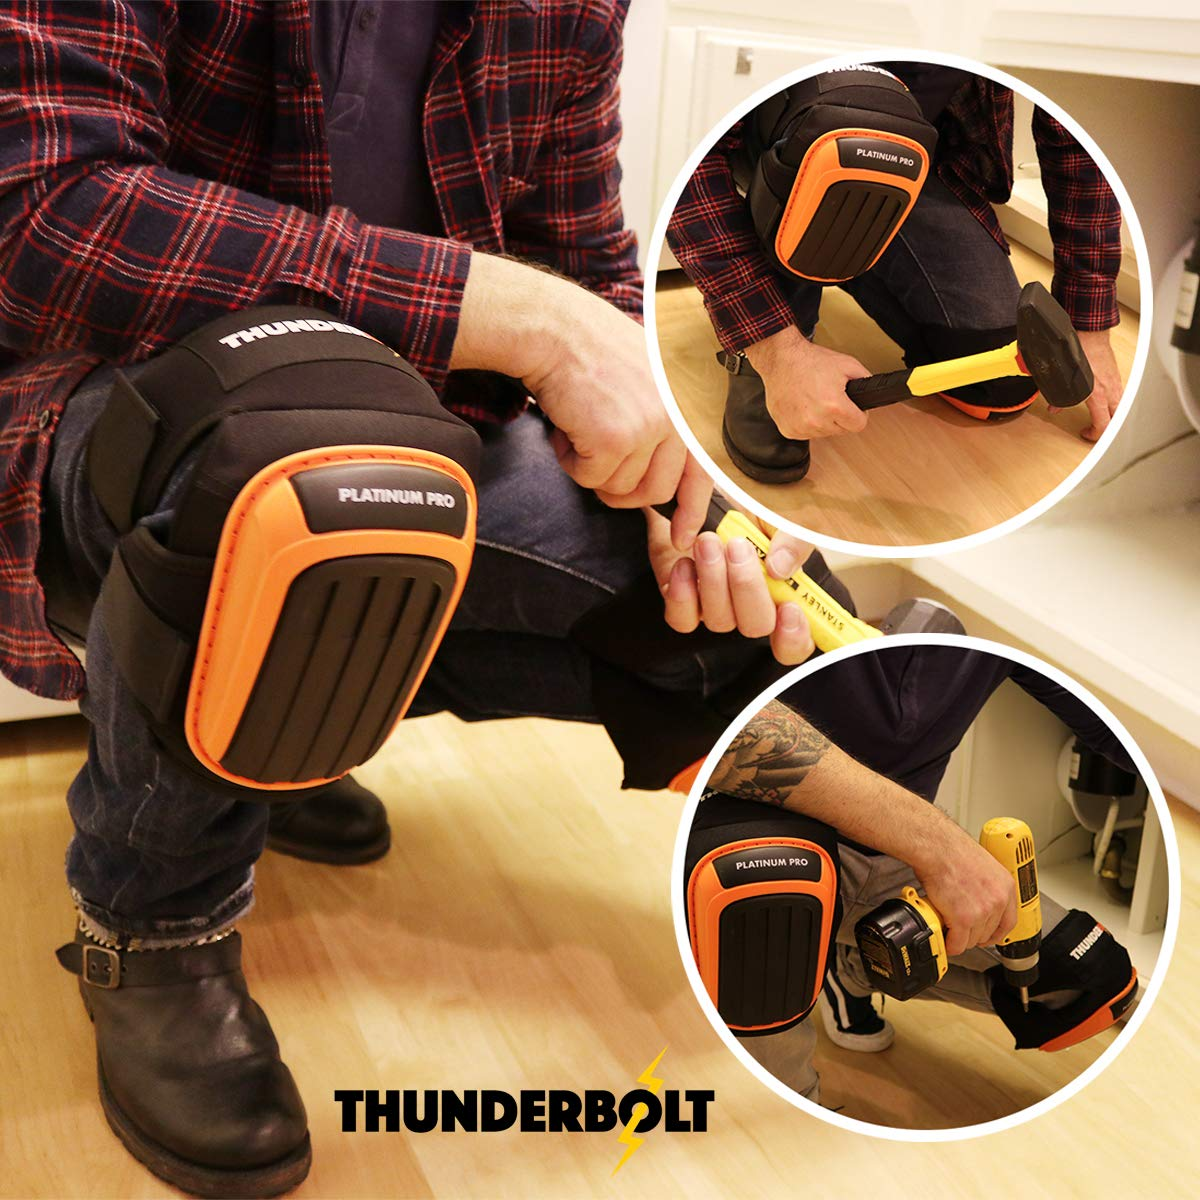 Knee Pads for Work by Thunderbolt with Heavy Duty Foam Cushioning and Gel Cushion Perfect for Construction, Flooring and Gardening with Adjustable Anti-Slip Straps by Thunderbolt (Image #3)